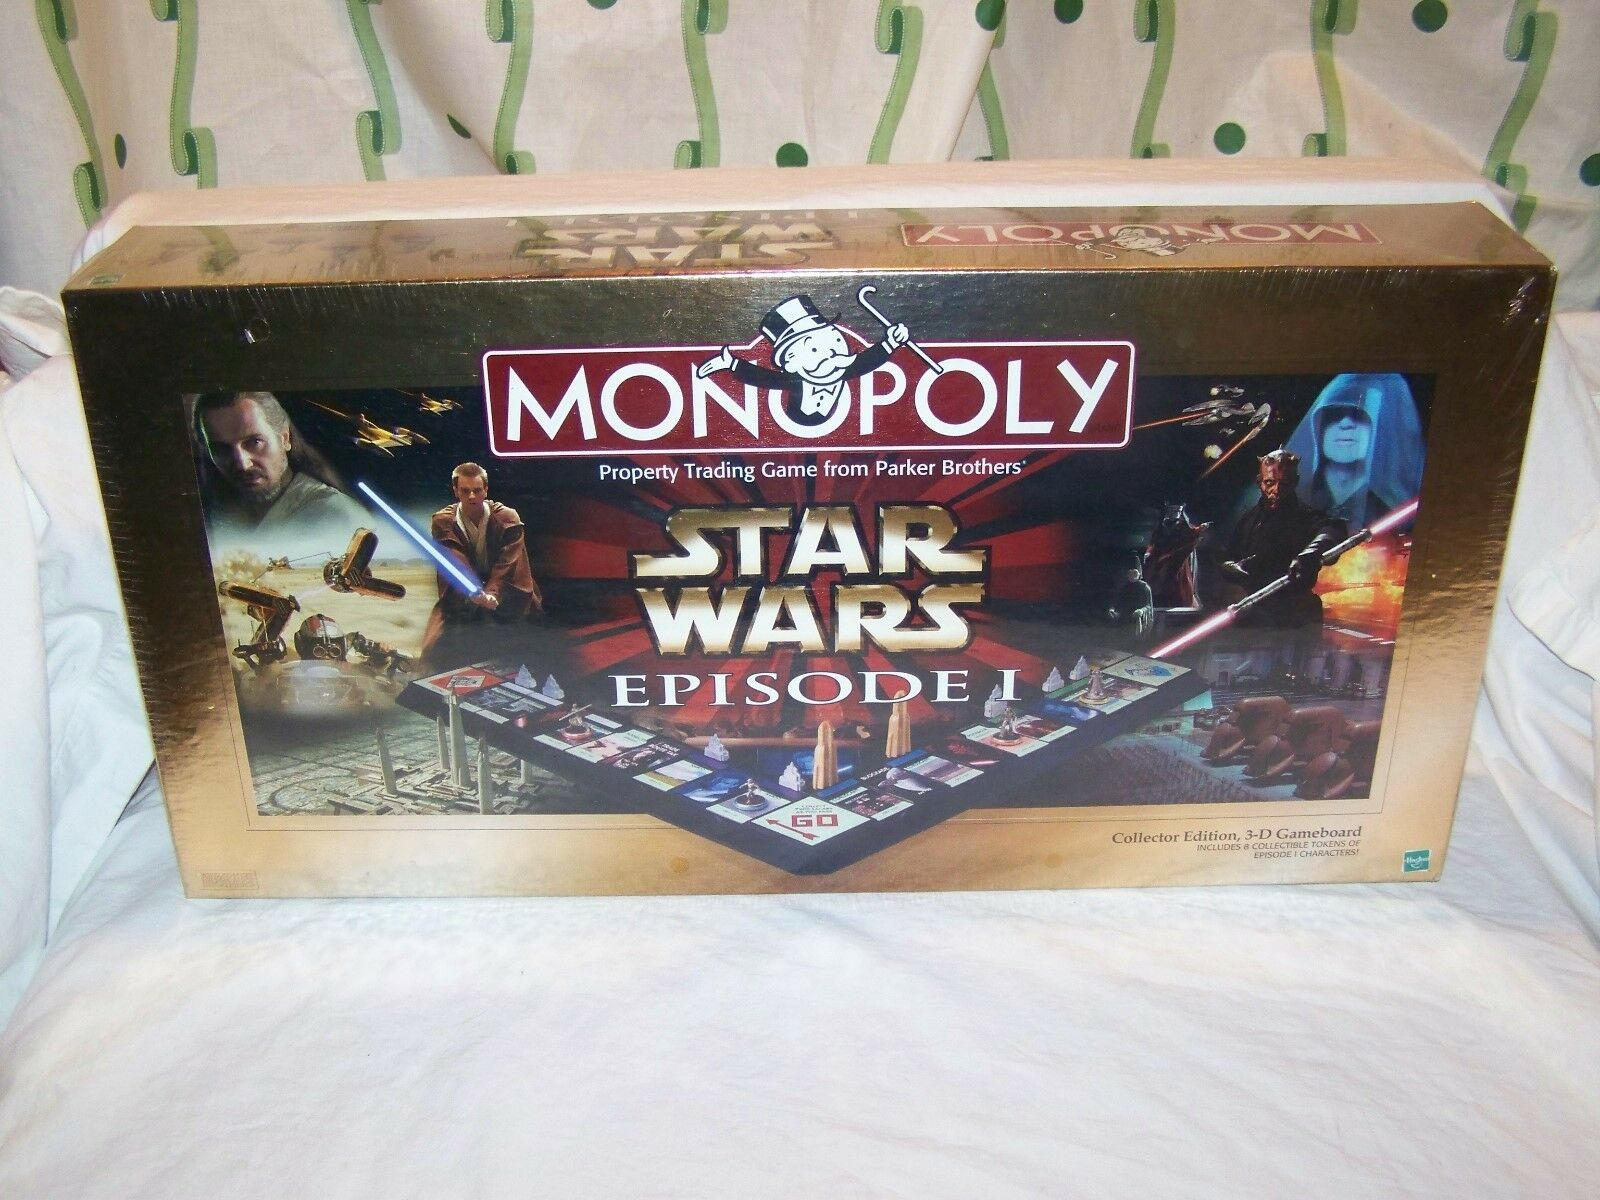 NEW 1 Monopoly Star Wars Episode 1 NEW Collectors Edition 1999 Factory Sealed 3-D fe7af8